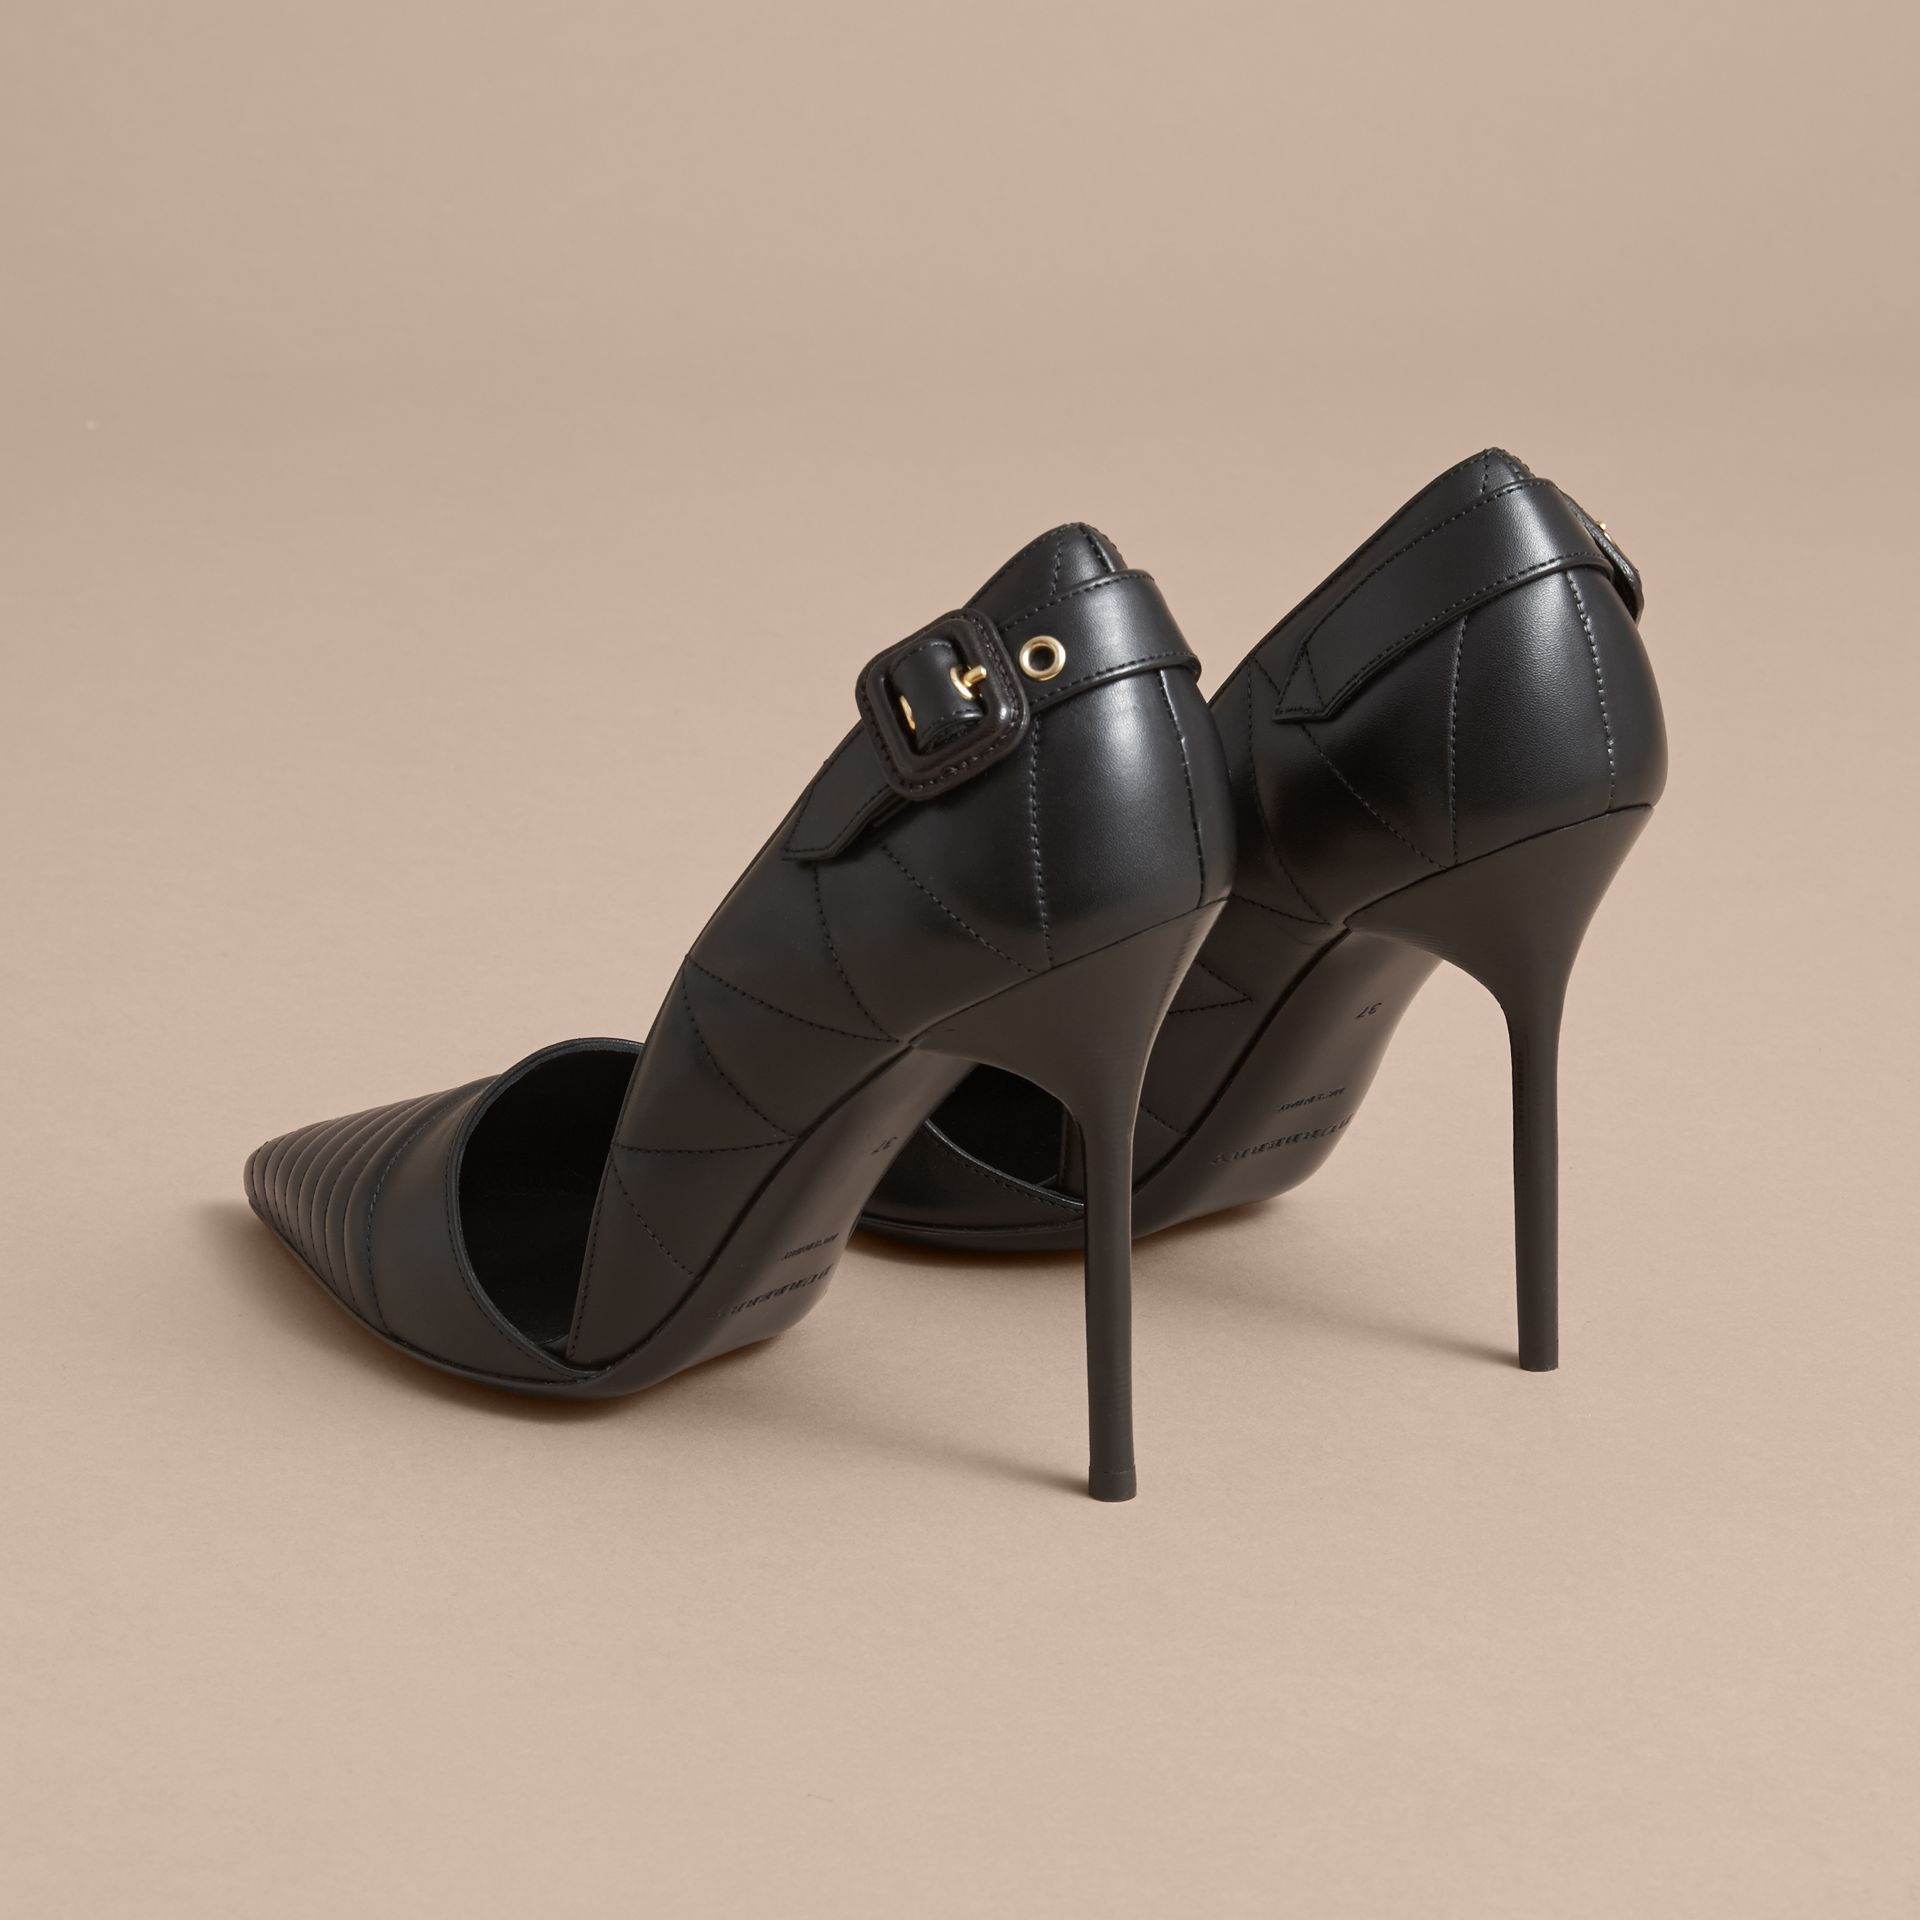 Quilted Leather D'Orsay Pumps in Black - Women | Burberry - gallery image 3